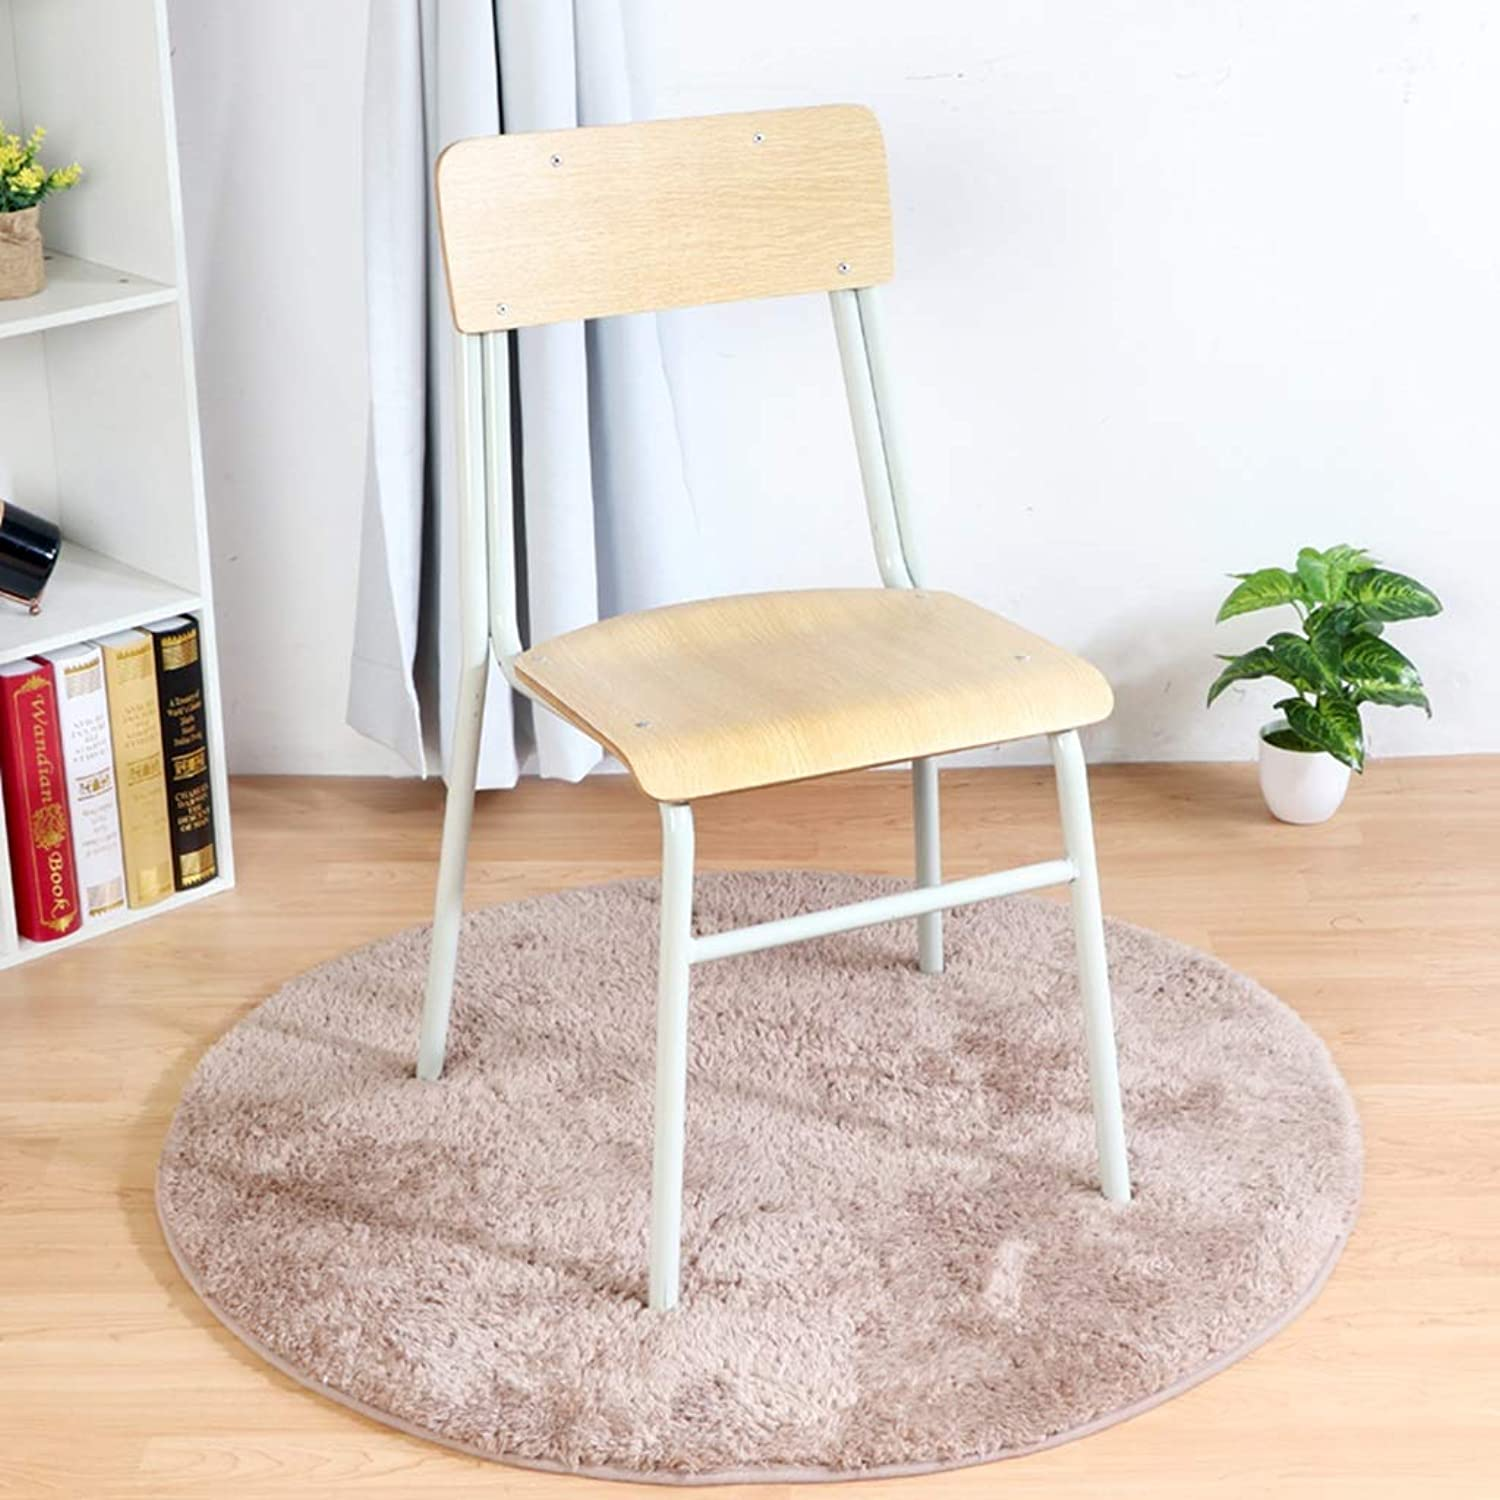 Fast Food pad Shop Chair, Coffee Shop Tea Shop Chair Wood Metal with backrest High Stool Living Room Kitchen Bench Height 80CM (color   Wood color)